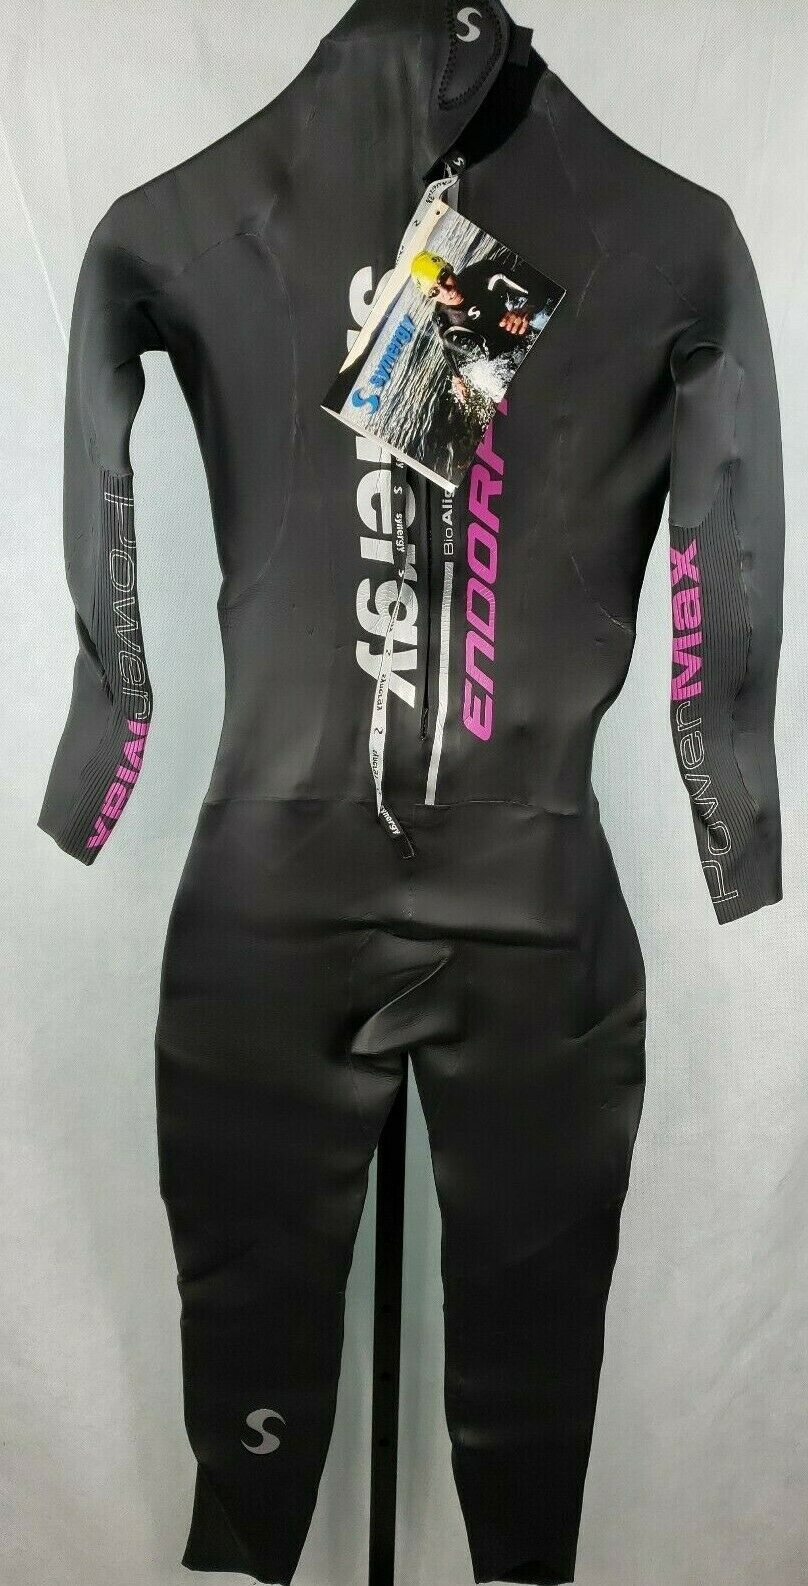 Synergy Bioalign Endorfine Powermax Long John Wetsuit Womannen's afmeting W2